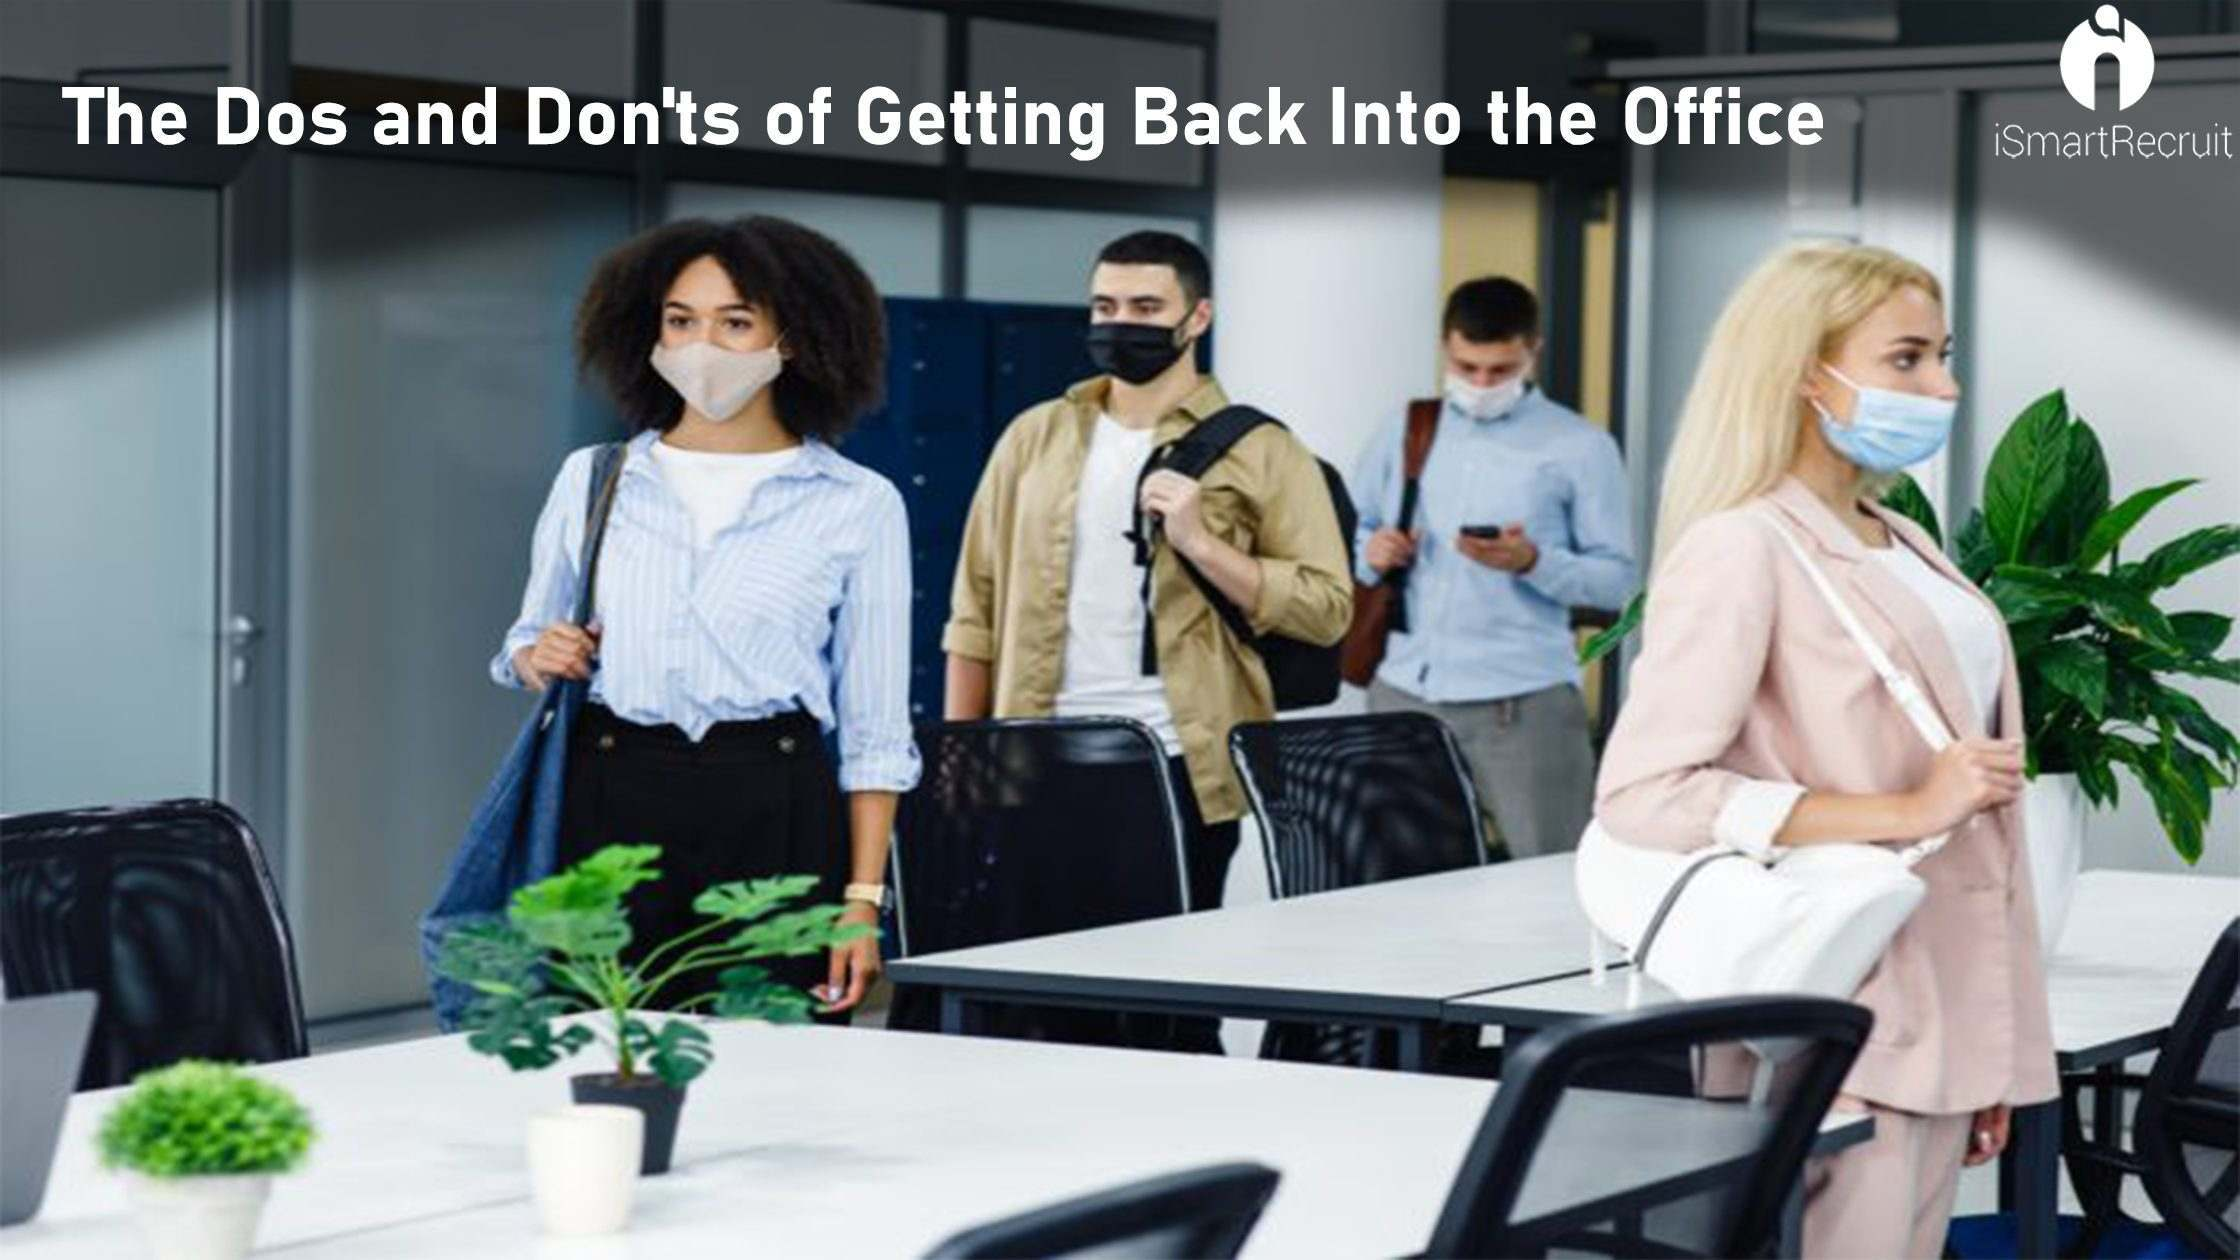 The Dos and Don'ts of Getting Back Into the Office